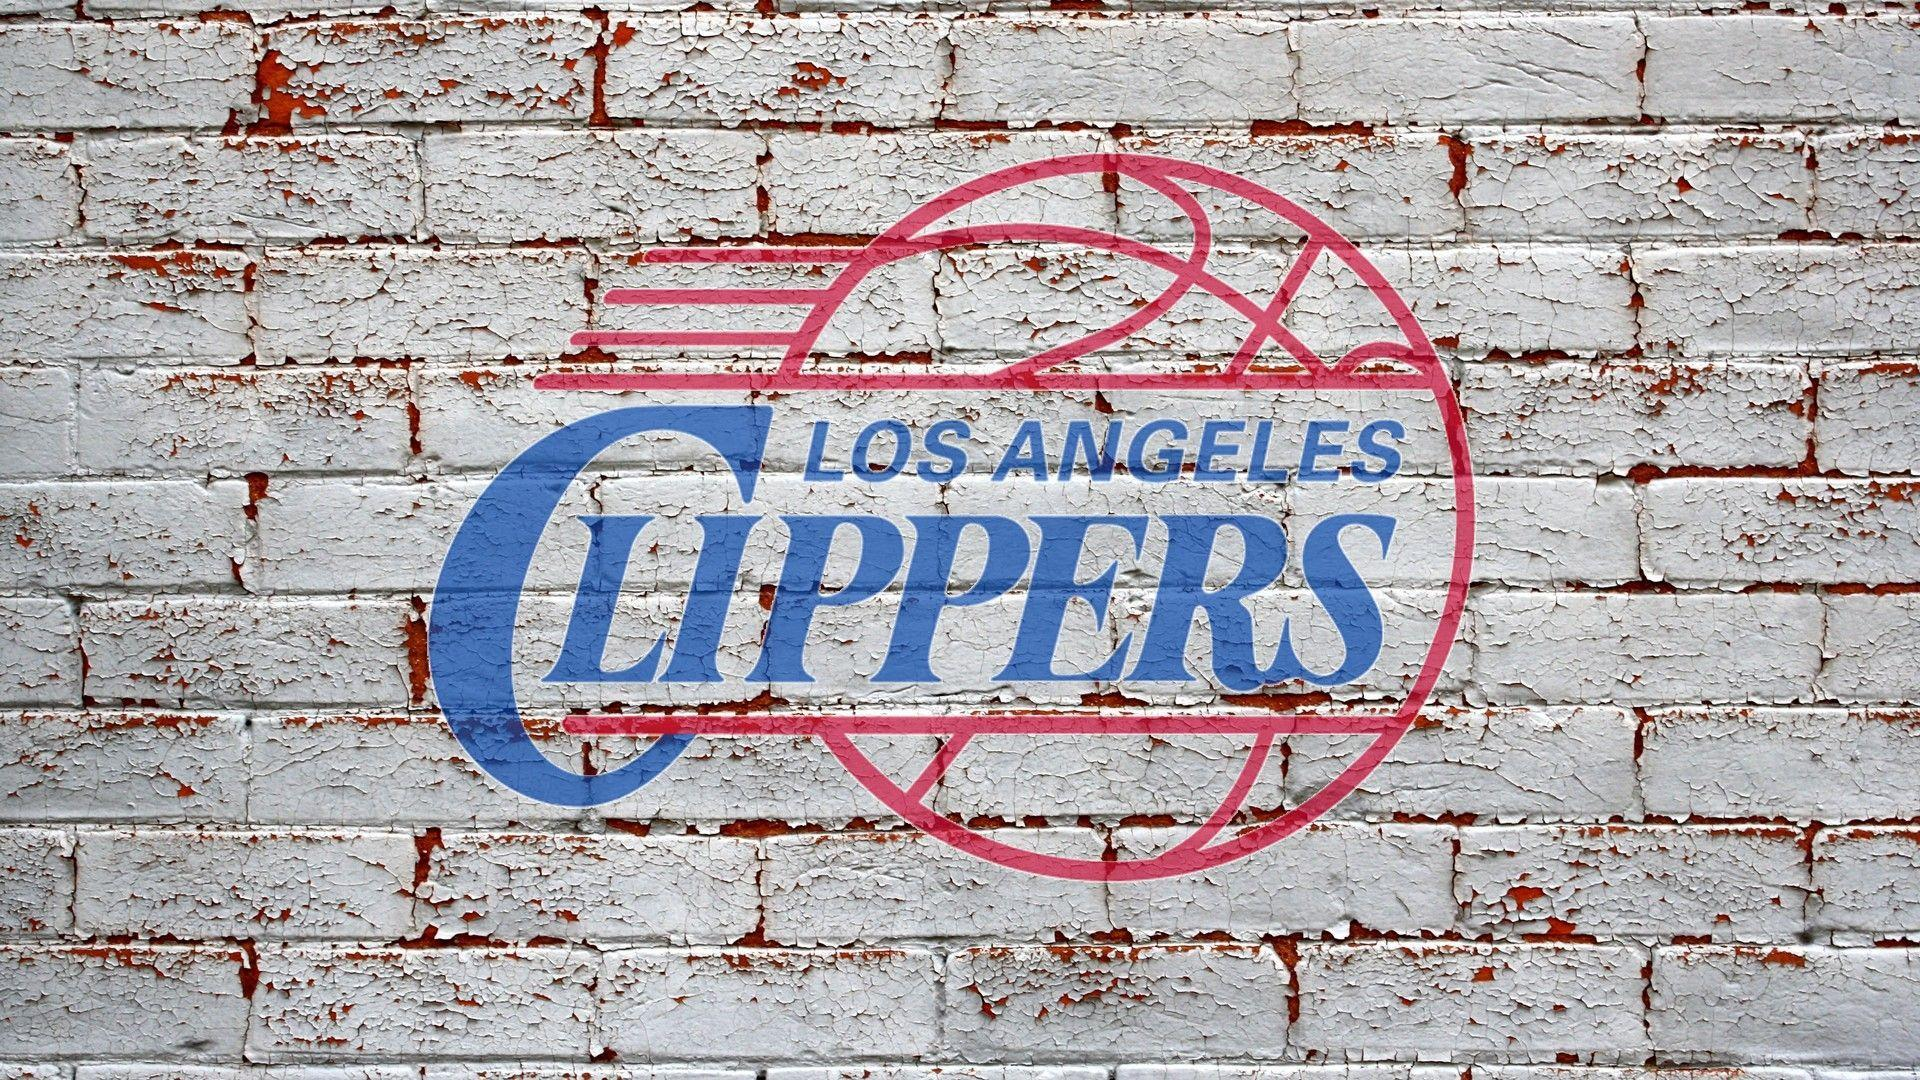 los angeles clippers wallpaper HD – wallpapermonkey.com